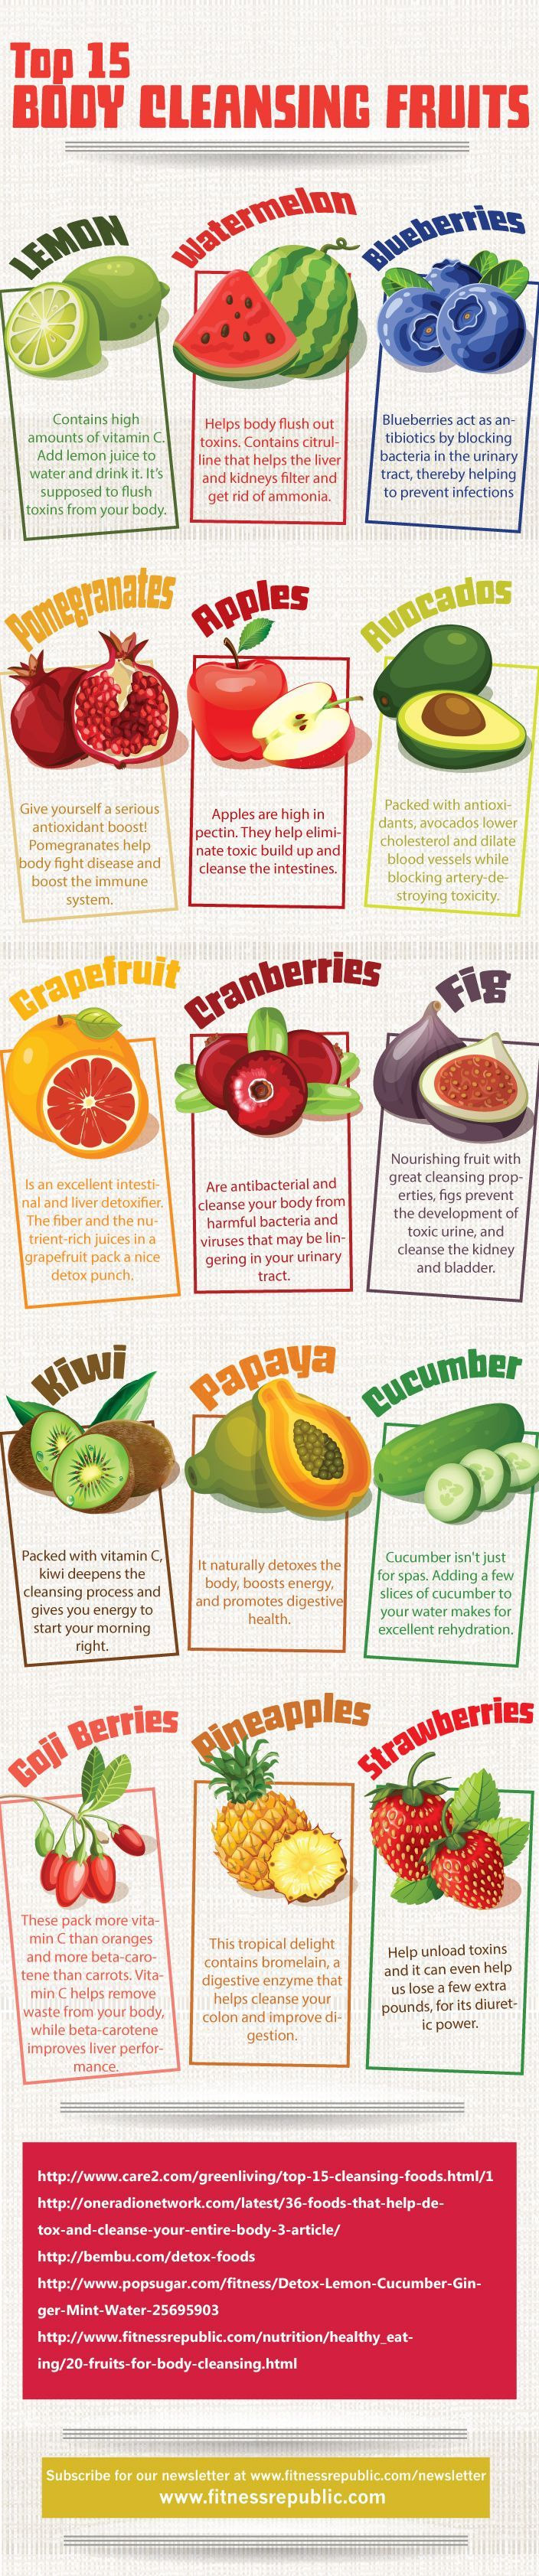 Top 15 Body Cleansing Fruits #readysetnewyou katehanke.isagenix.com